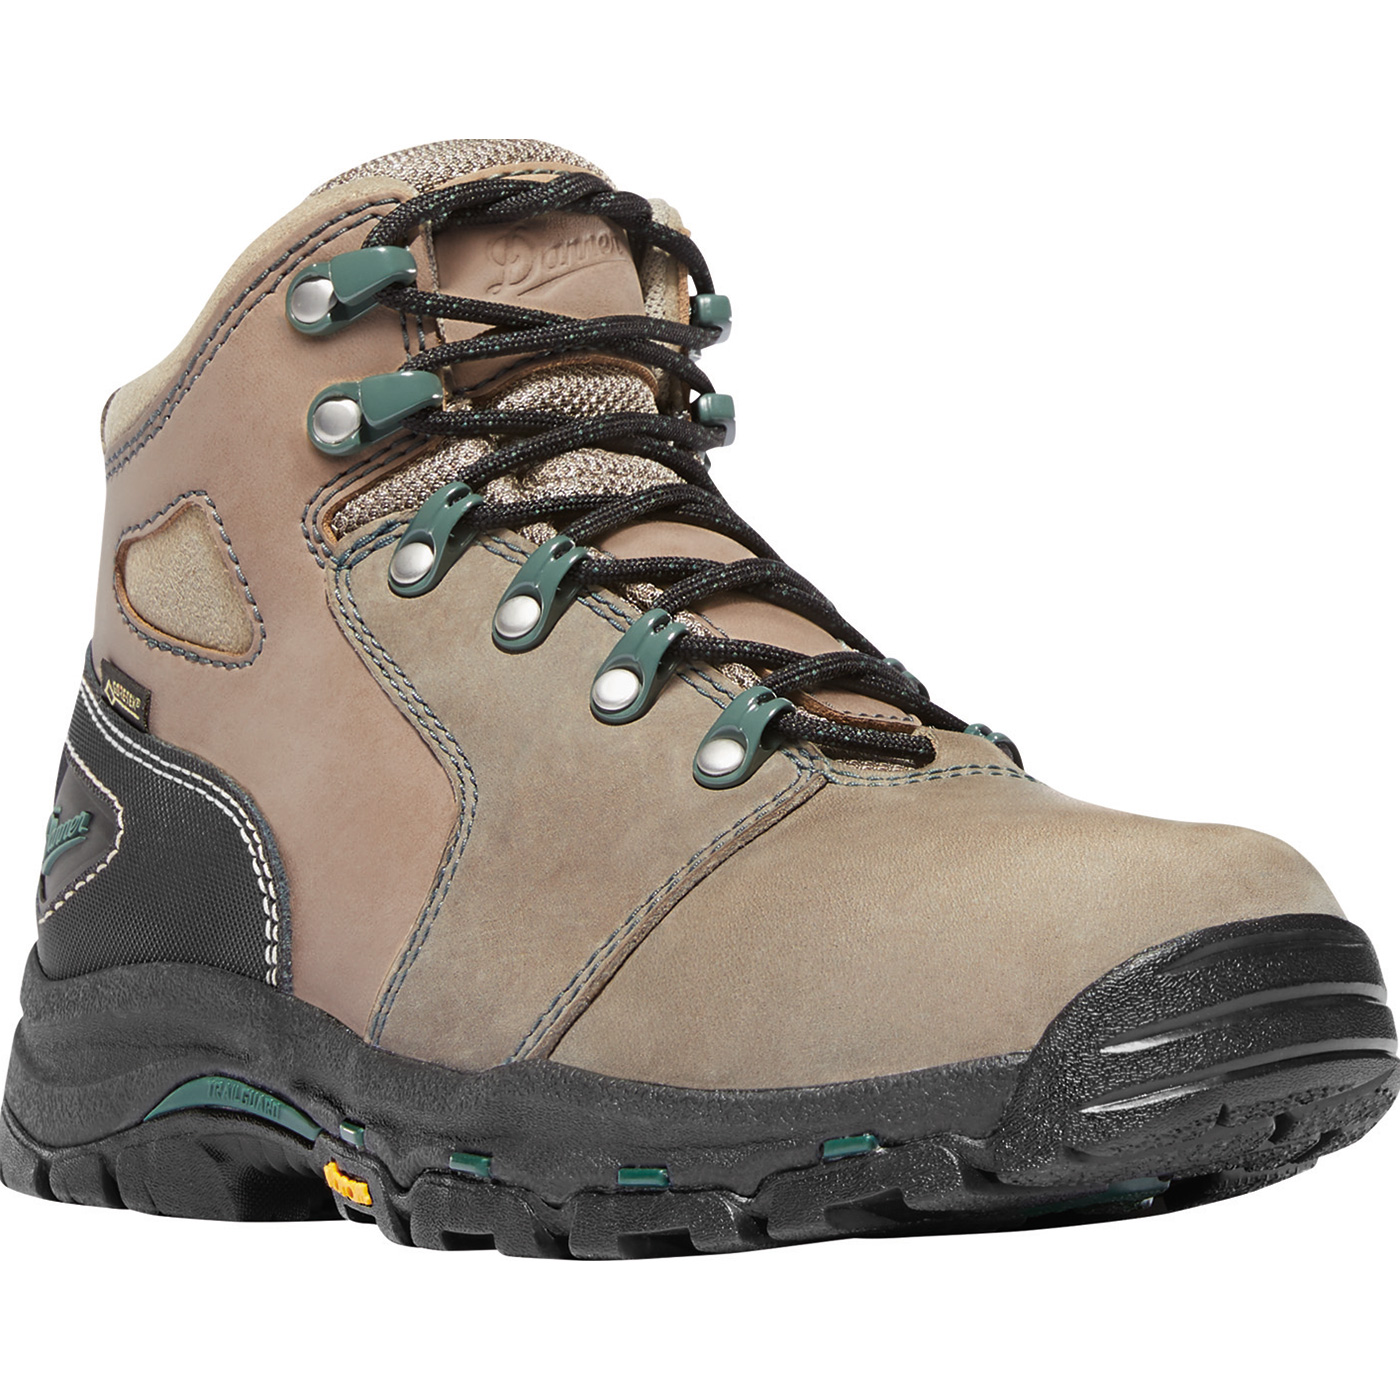 05272dfd4f4 Danner Vicious Women's 4 Inch Composite Toe Electrical Hazard Waterproof  Work Hiker